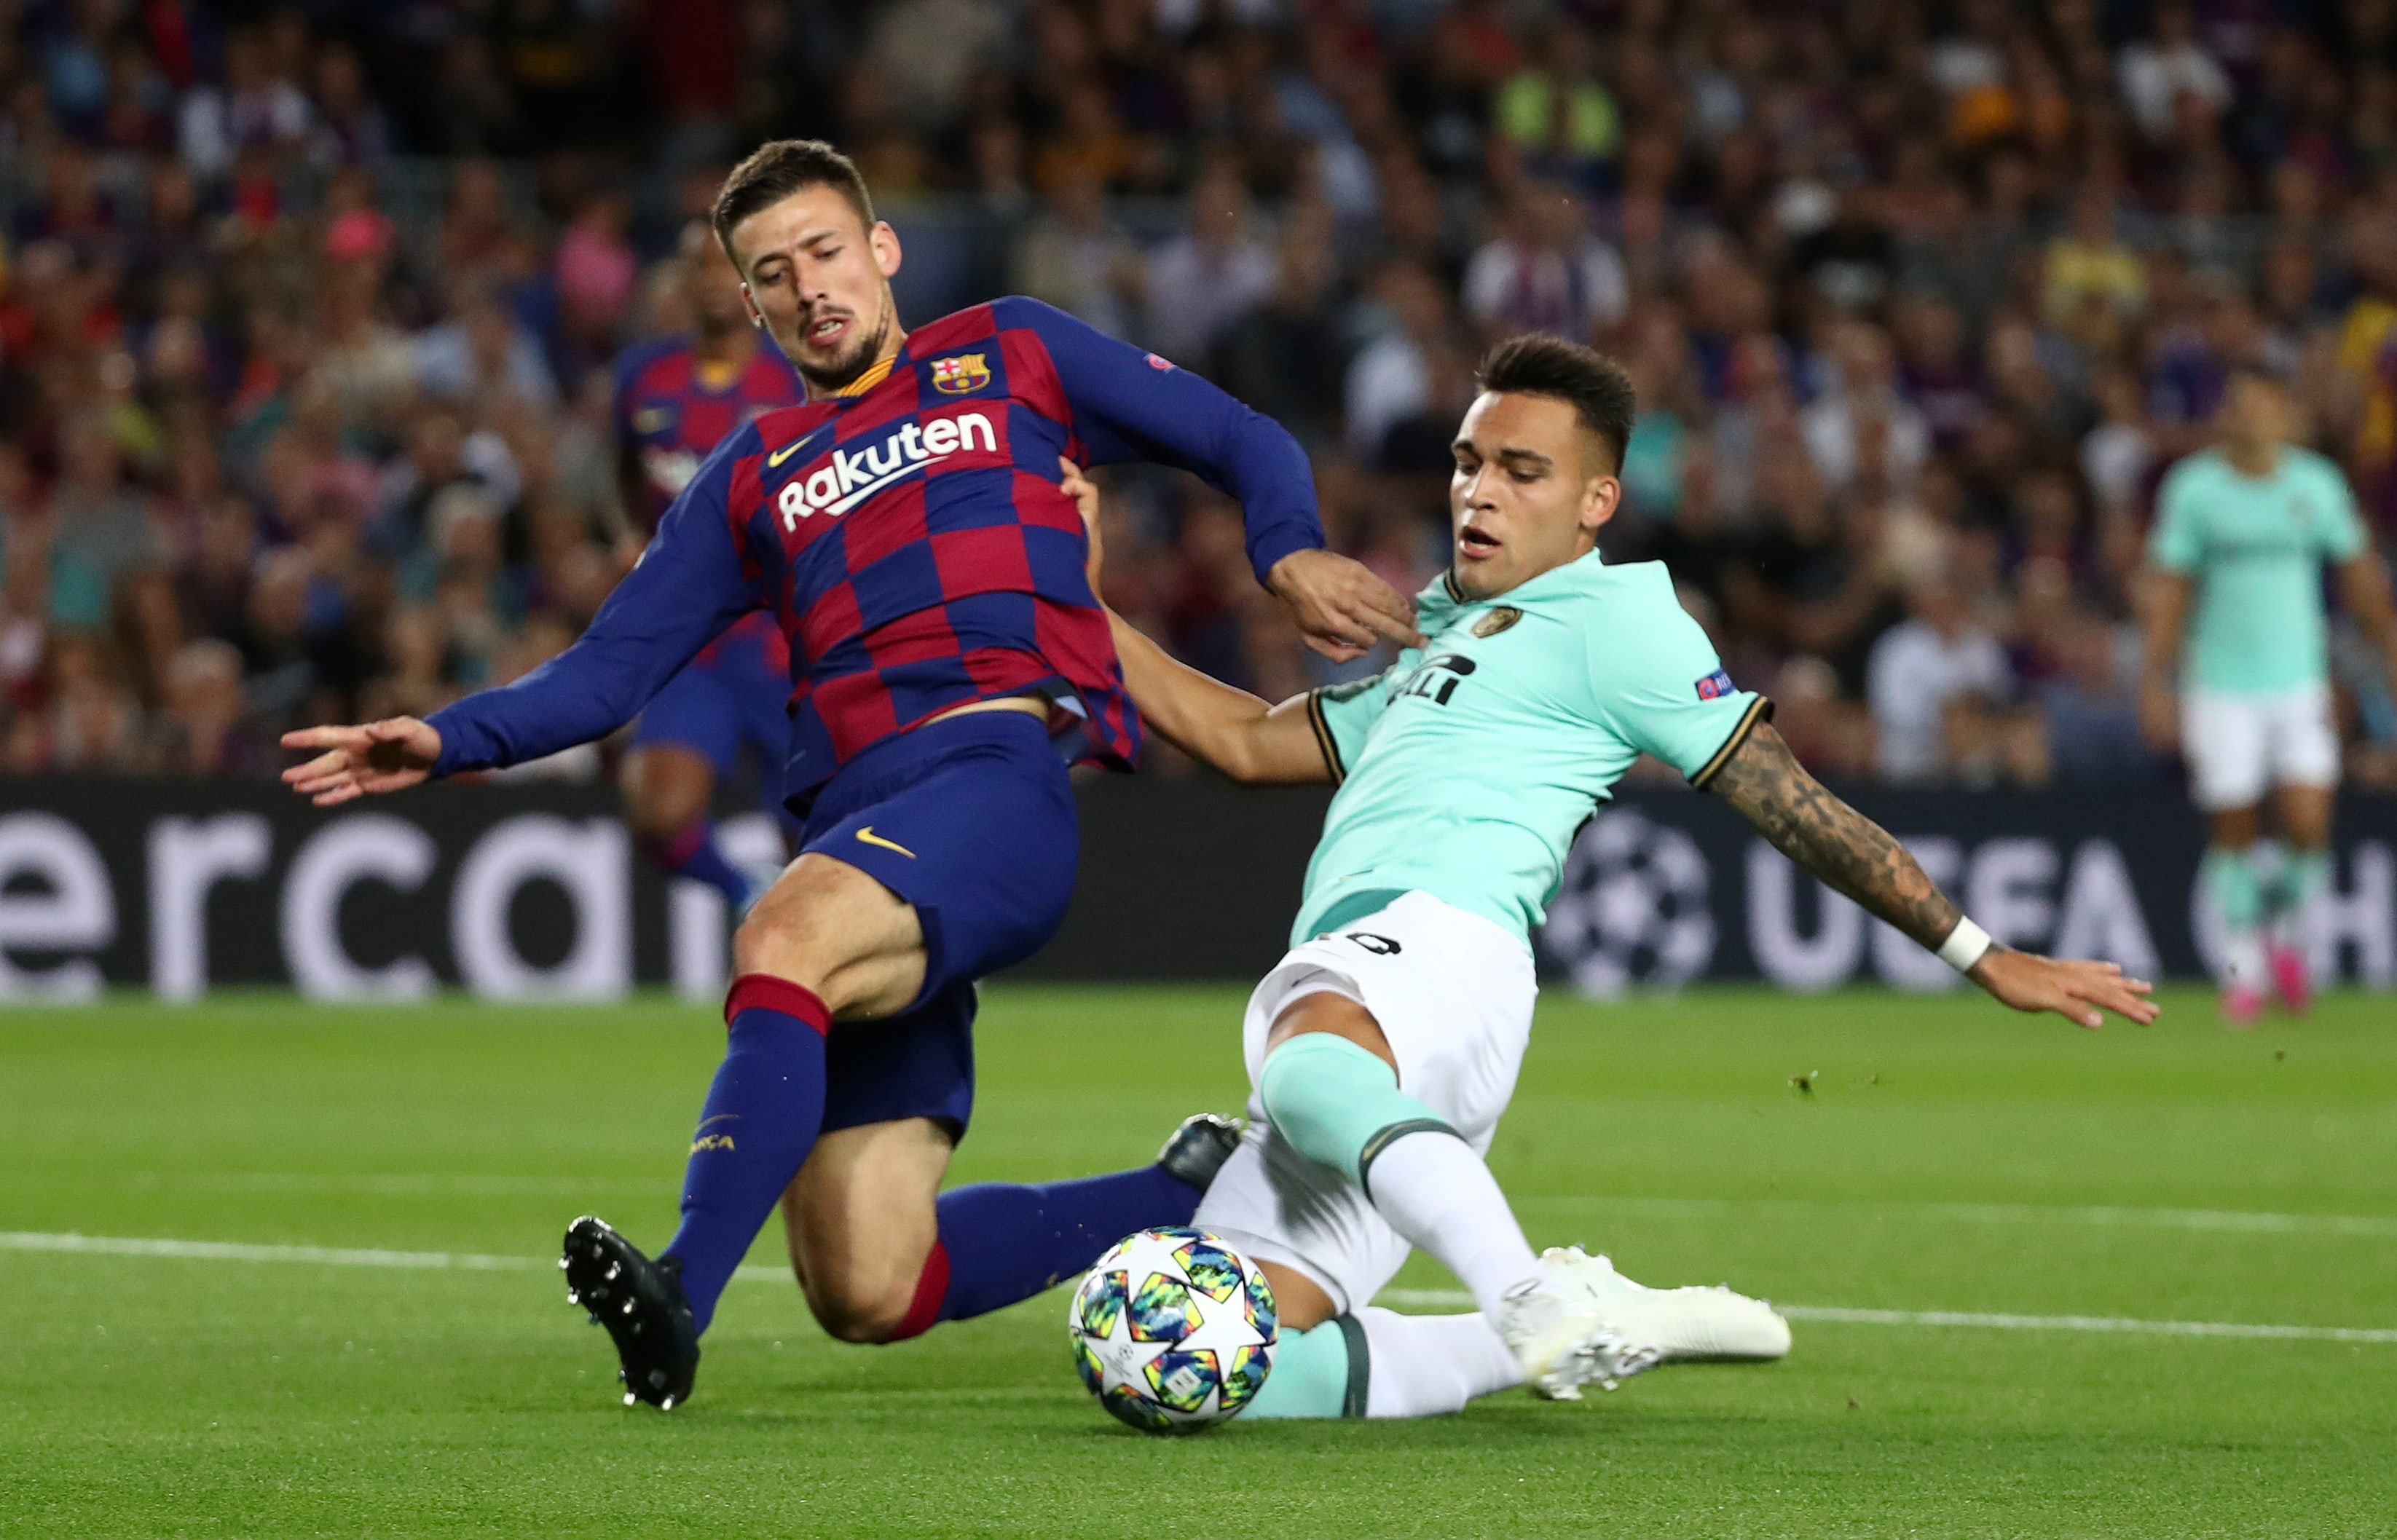 Top 5 Barcelona players with most tackles in 2019-20